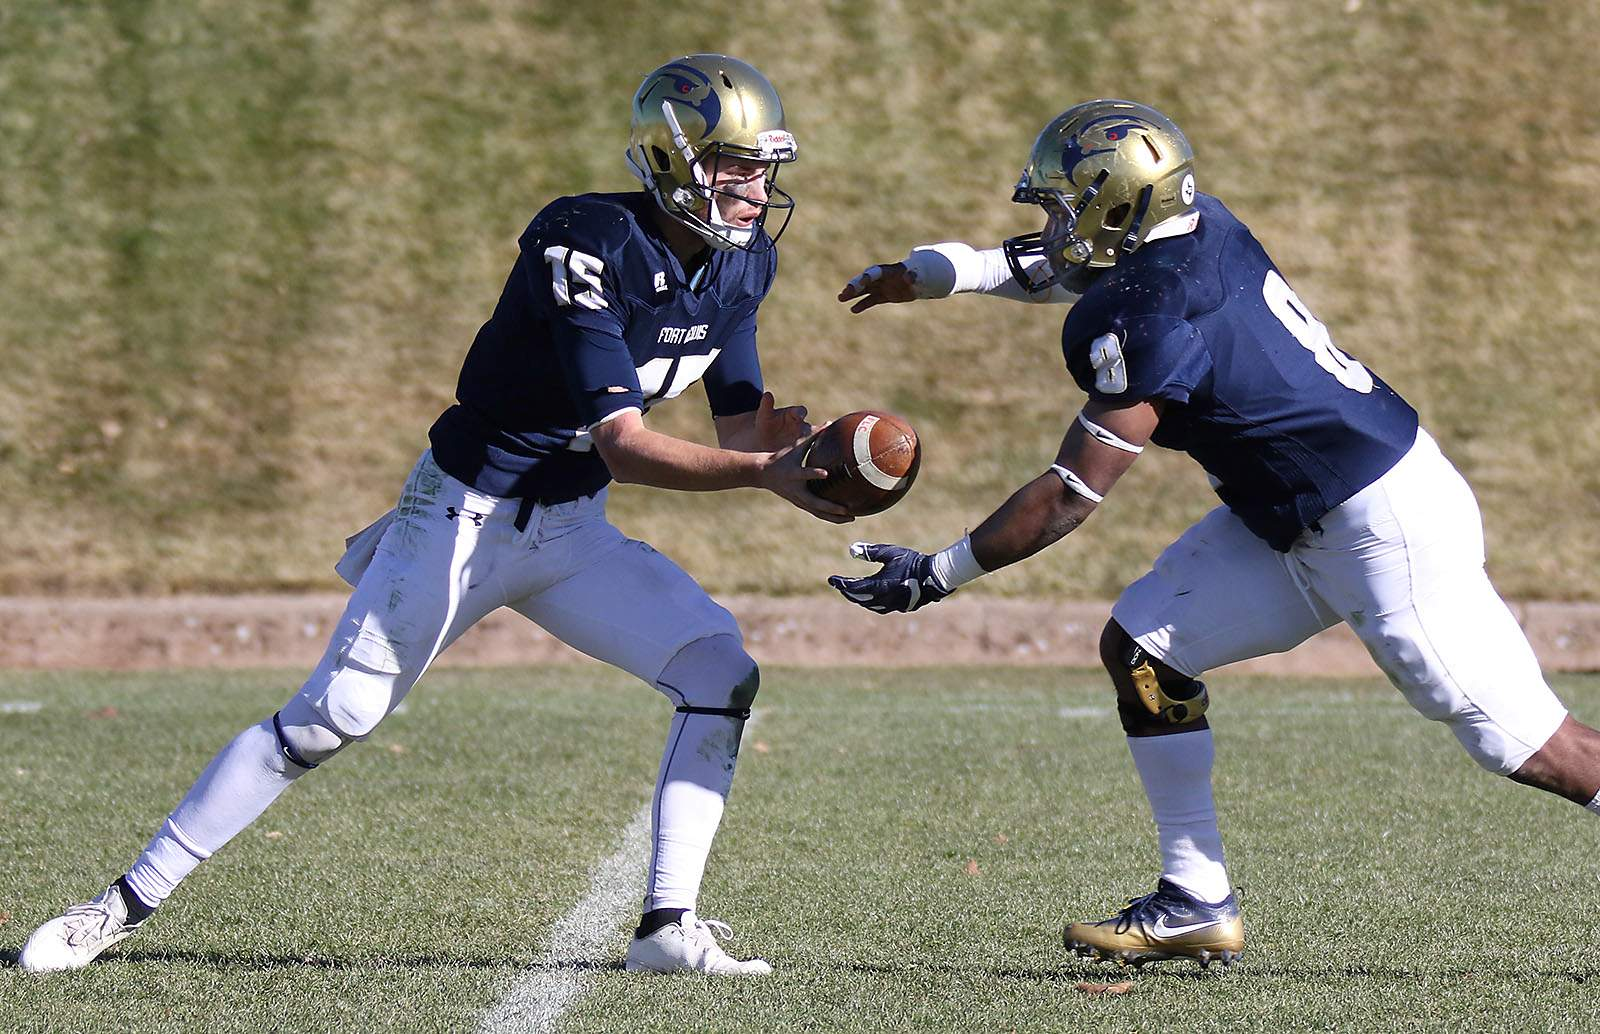 Fort Lewis College Football Season Ends With Disappointing Loss To